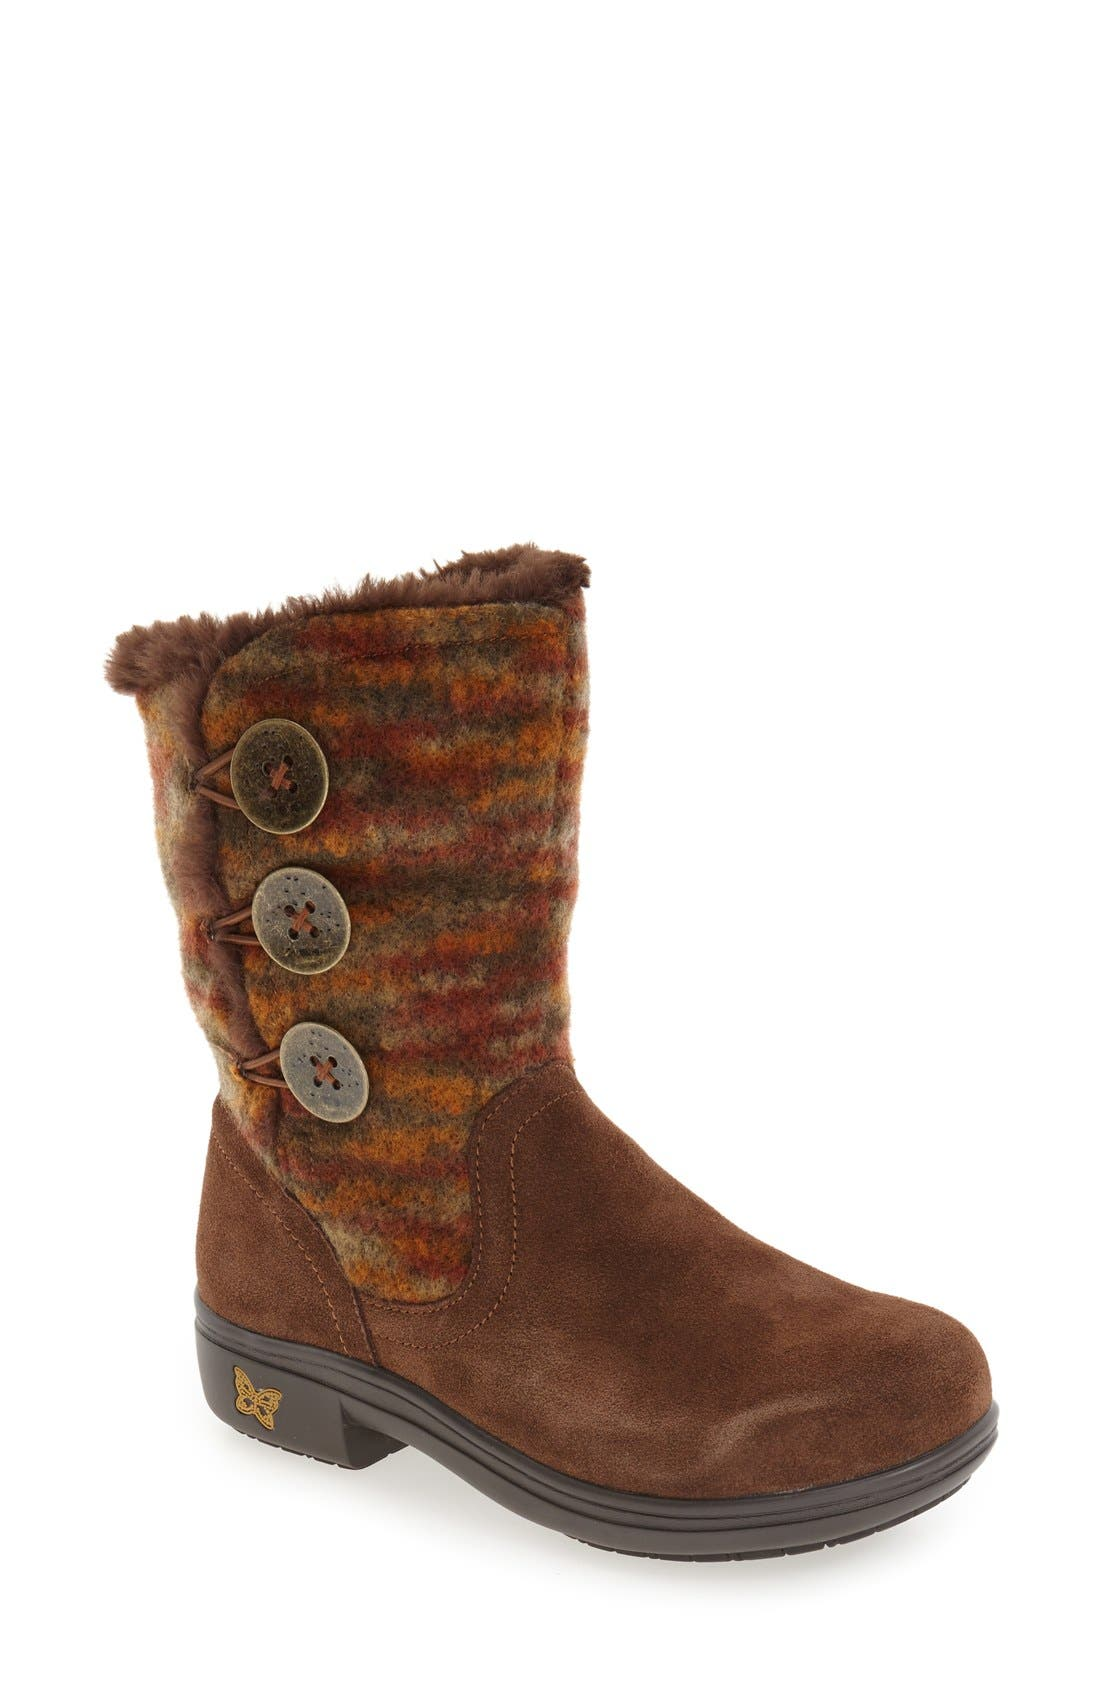 'Nanook' Suede Boot,                             Main thumbnail 1, color,                             Pecan Fuzzy Leather